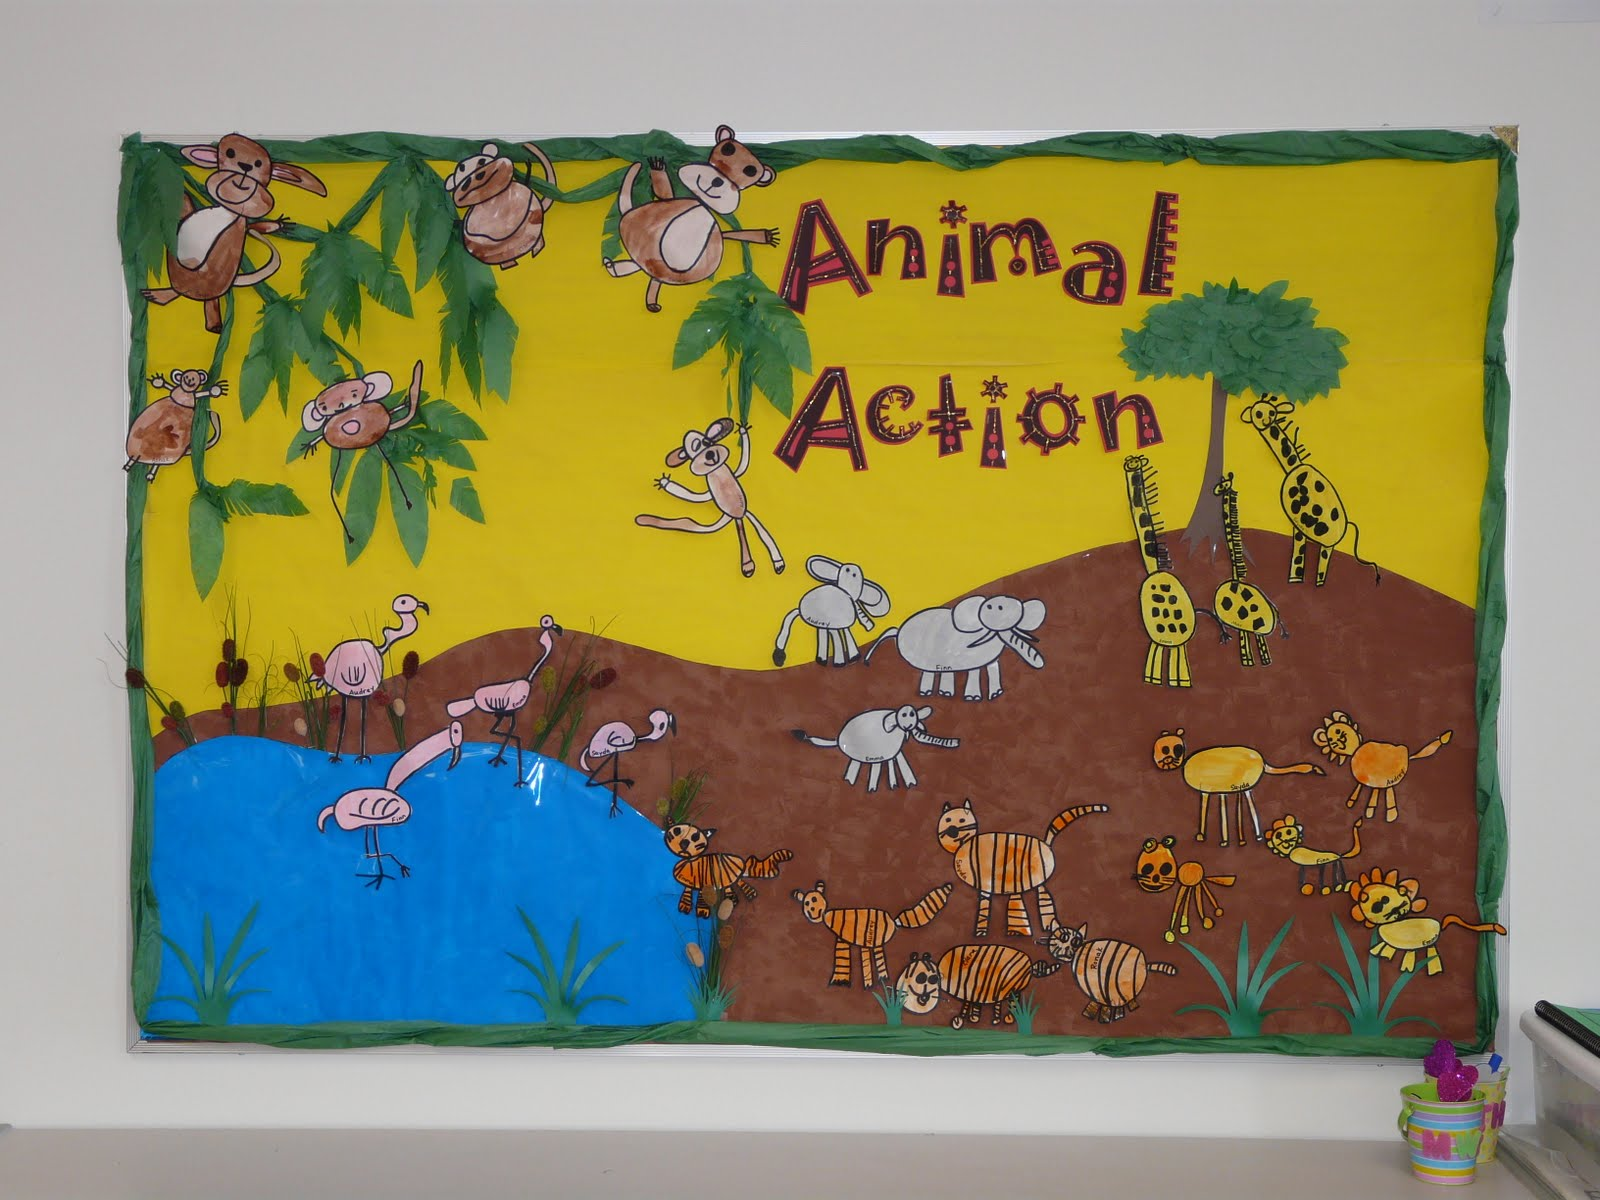 September Bulletin Board Ideas http://bulletinboardideas.blogspot.com/2009/11/animal-action.html